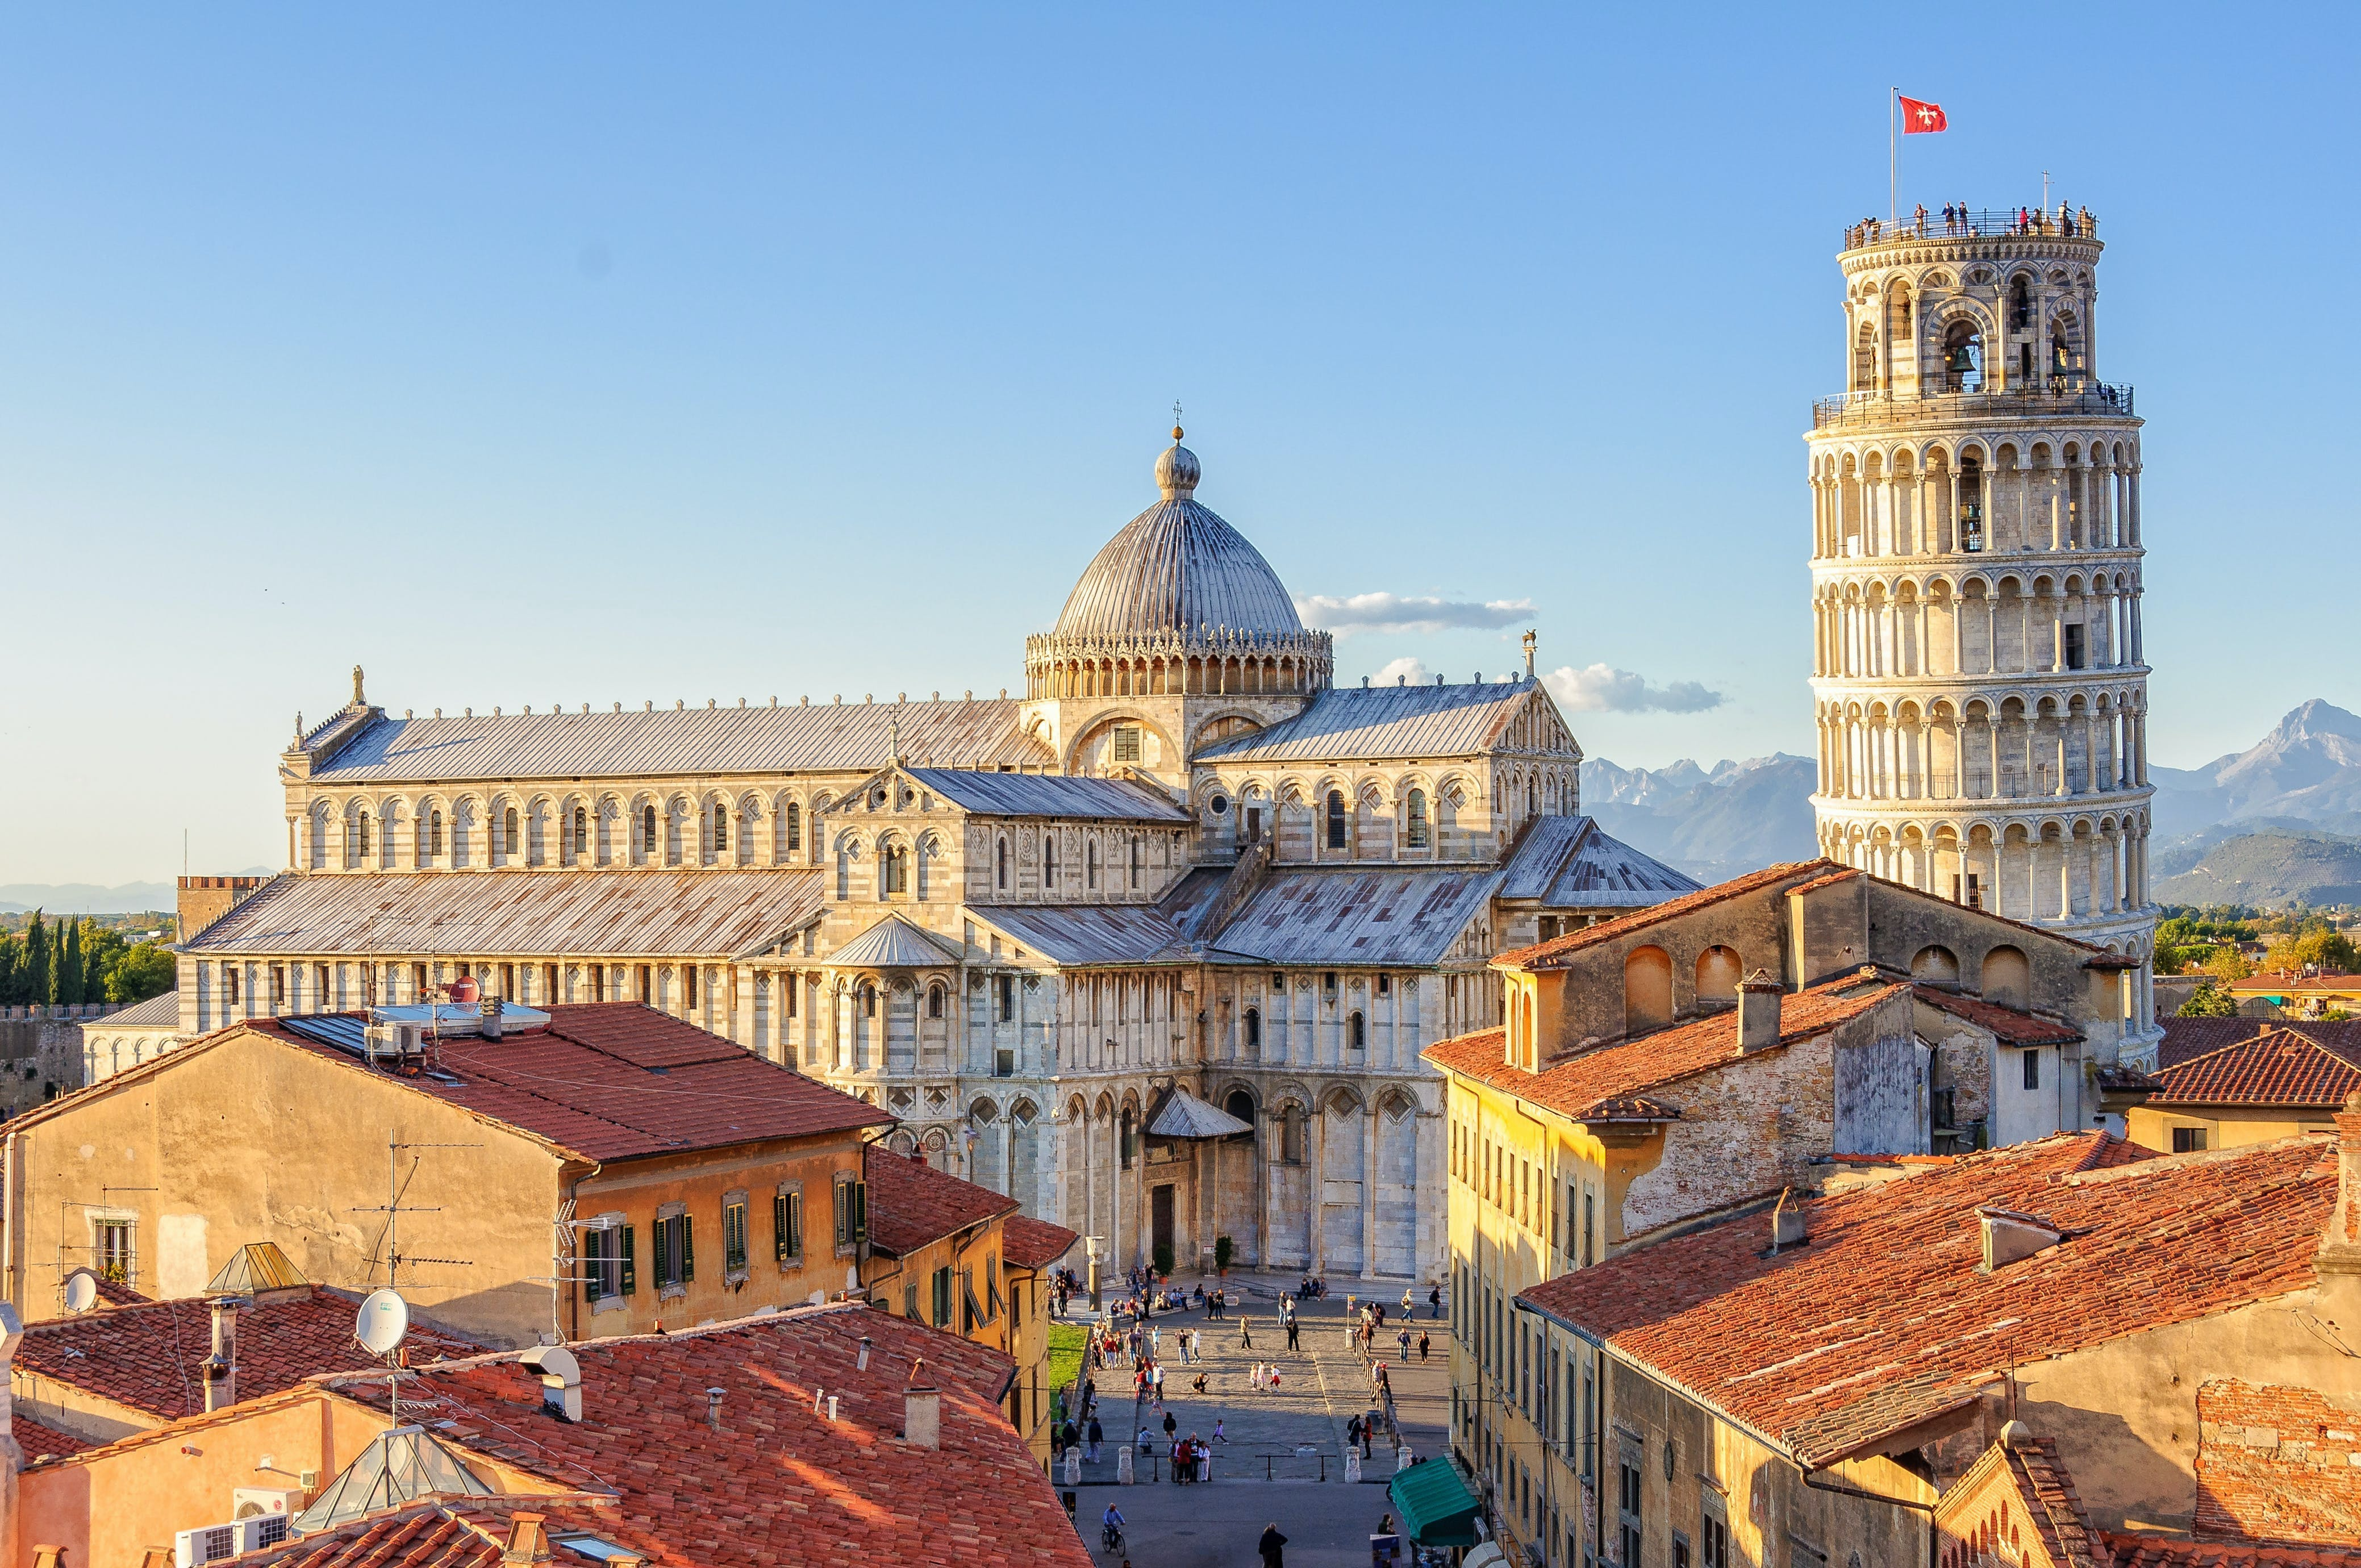 Square of Miracles guided tour with Pisa Leaning Tower skip-the-line tickets (option)